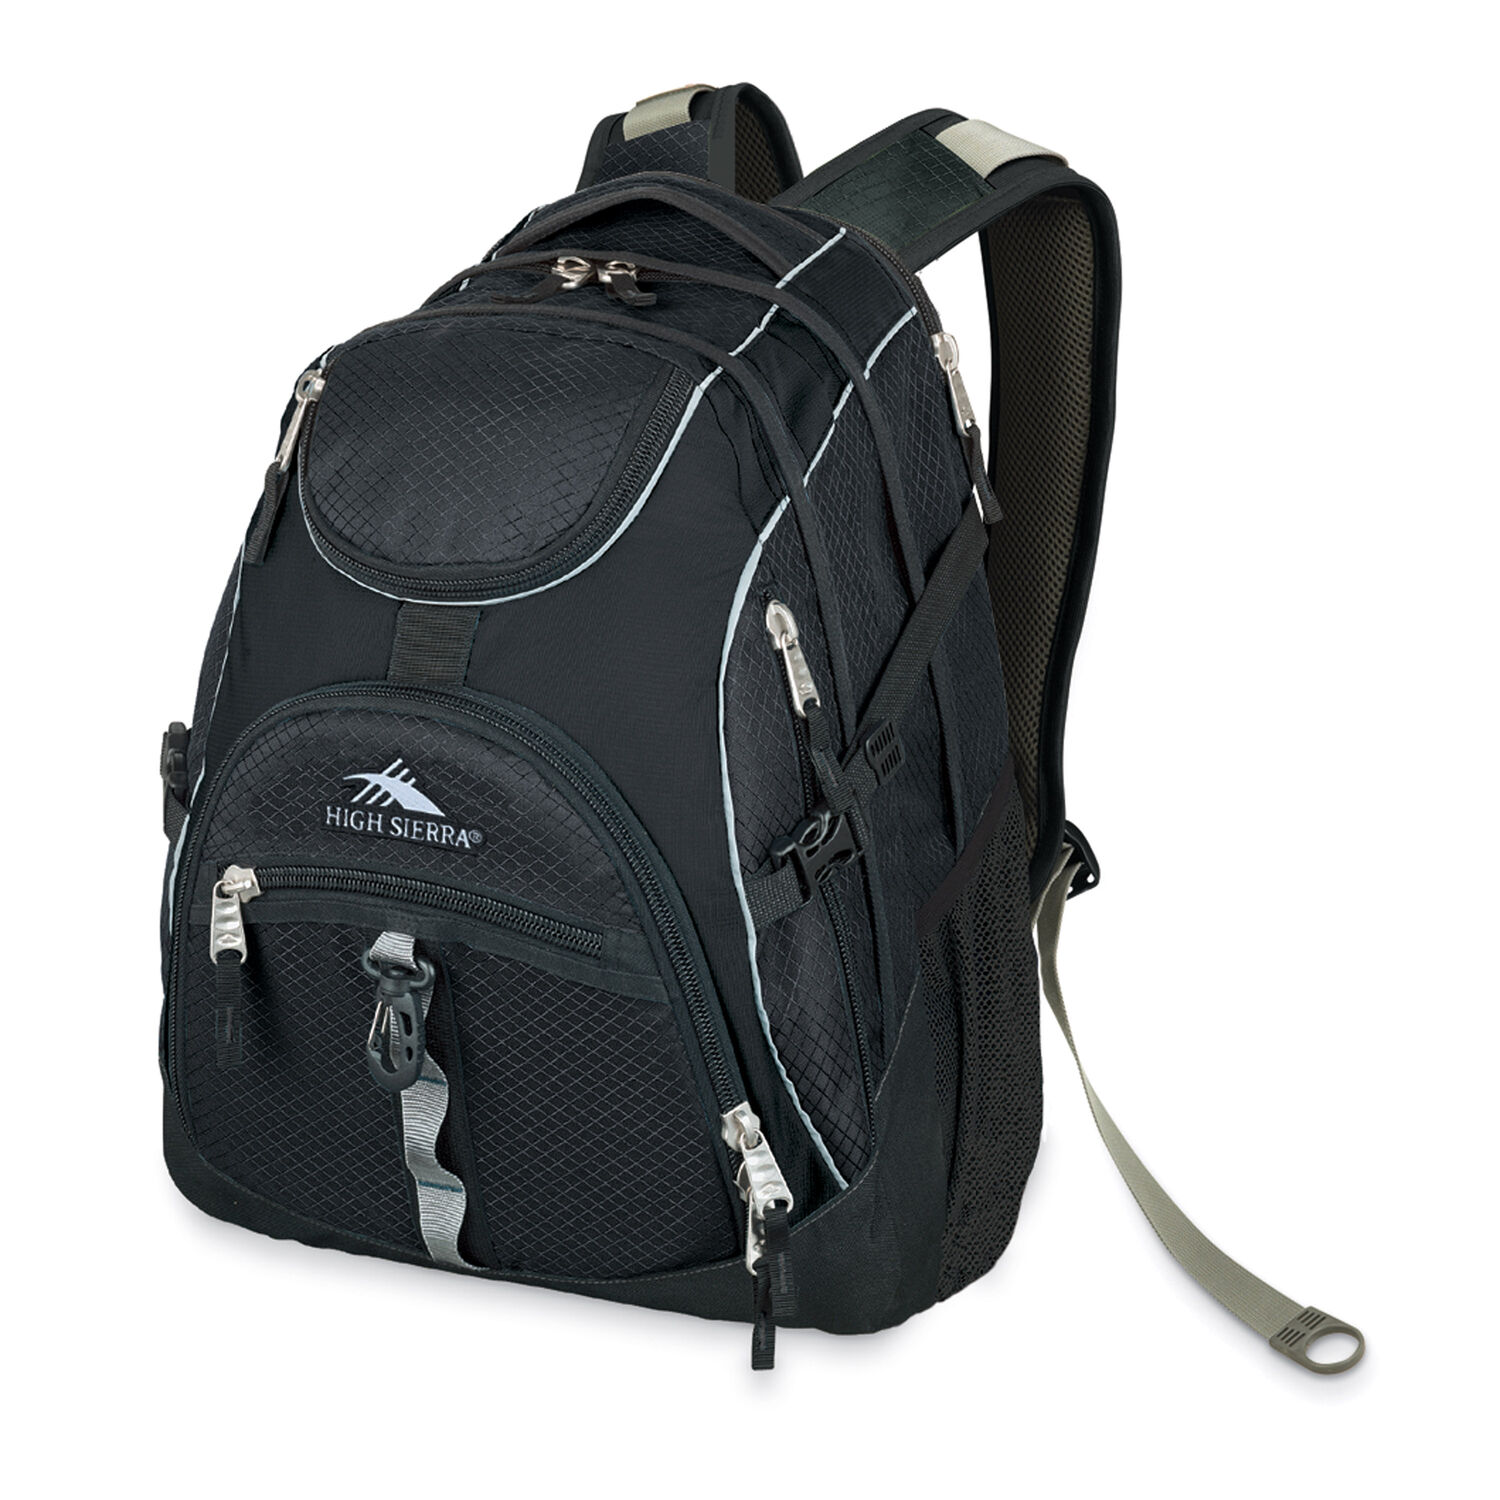 61ad1790505b High Sierra Access Backpack in the color Black Black.